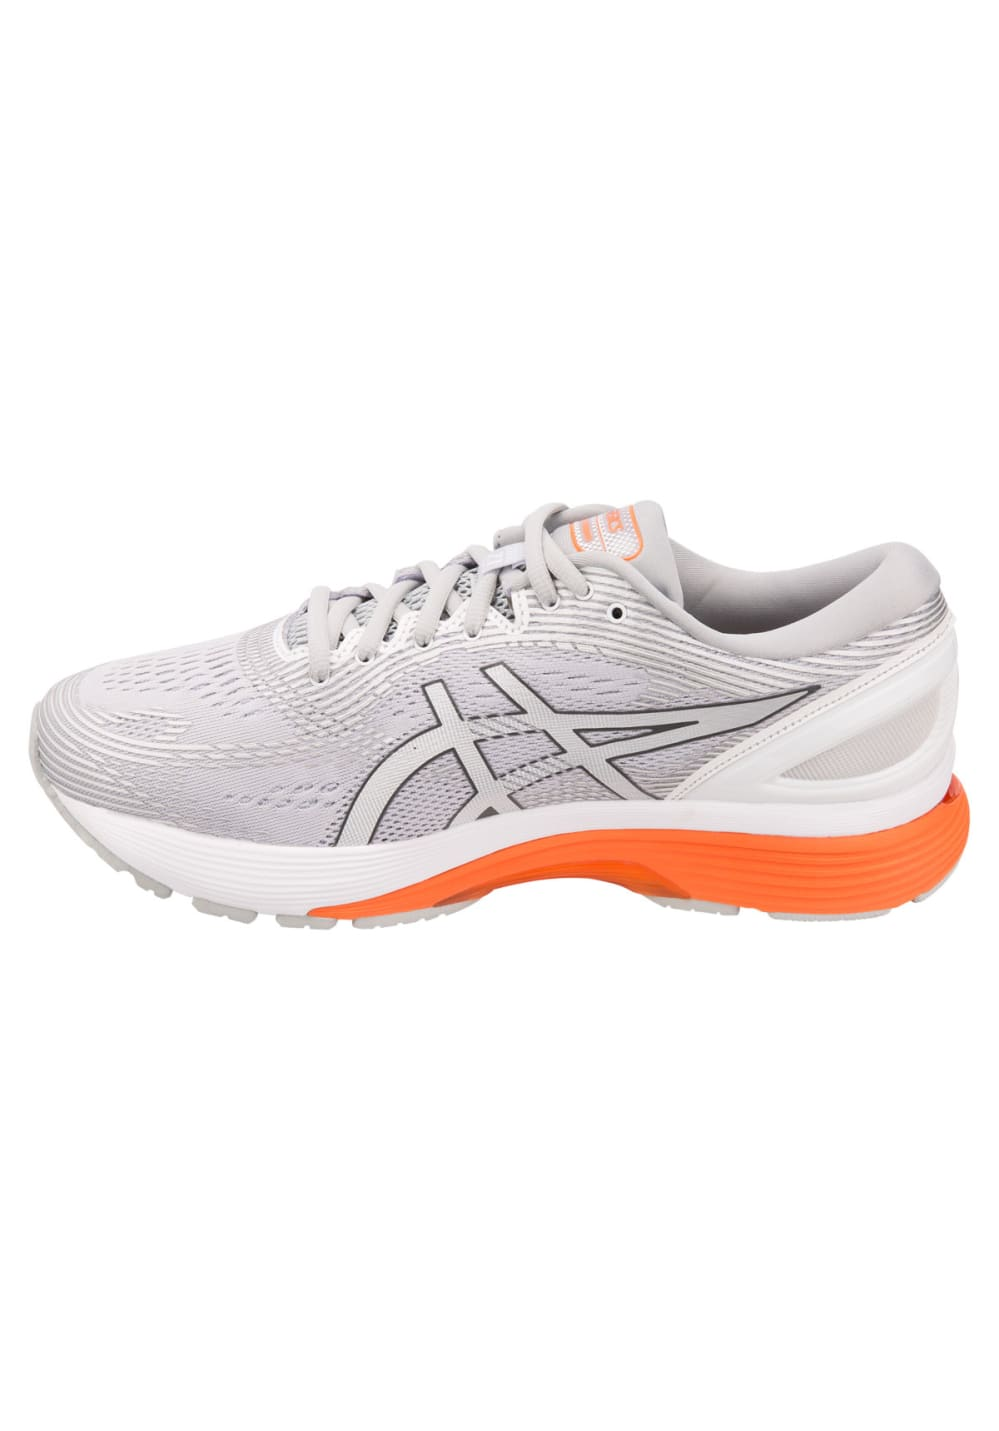 pretty nice fba79 6a46e ASICS Gel-Nimbus 21 - Running shoes for Men - Grey